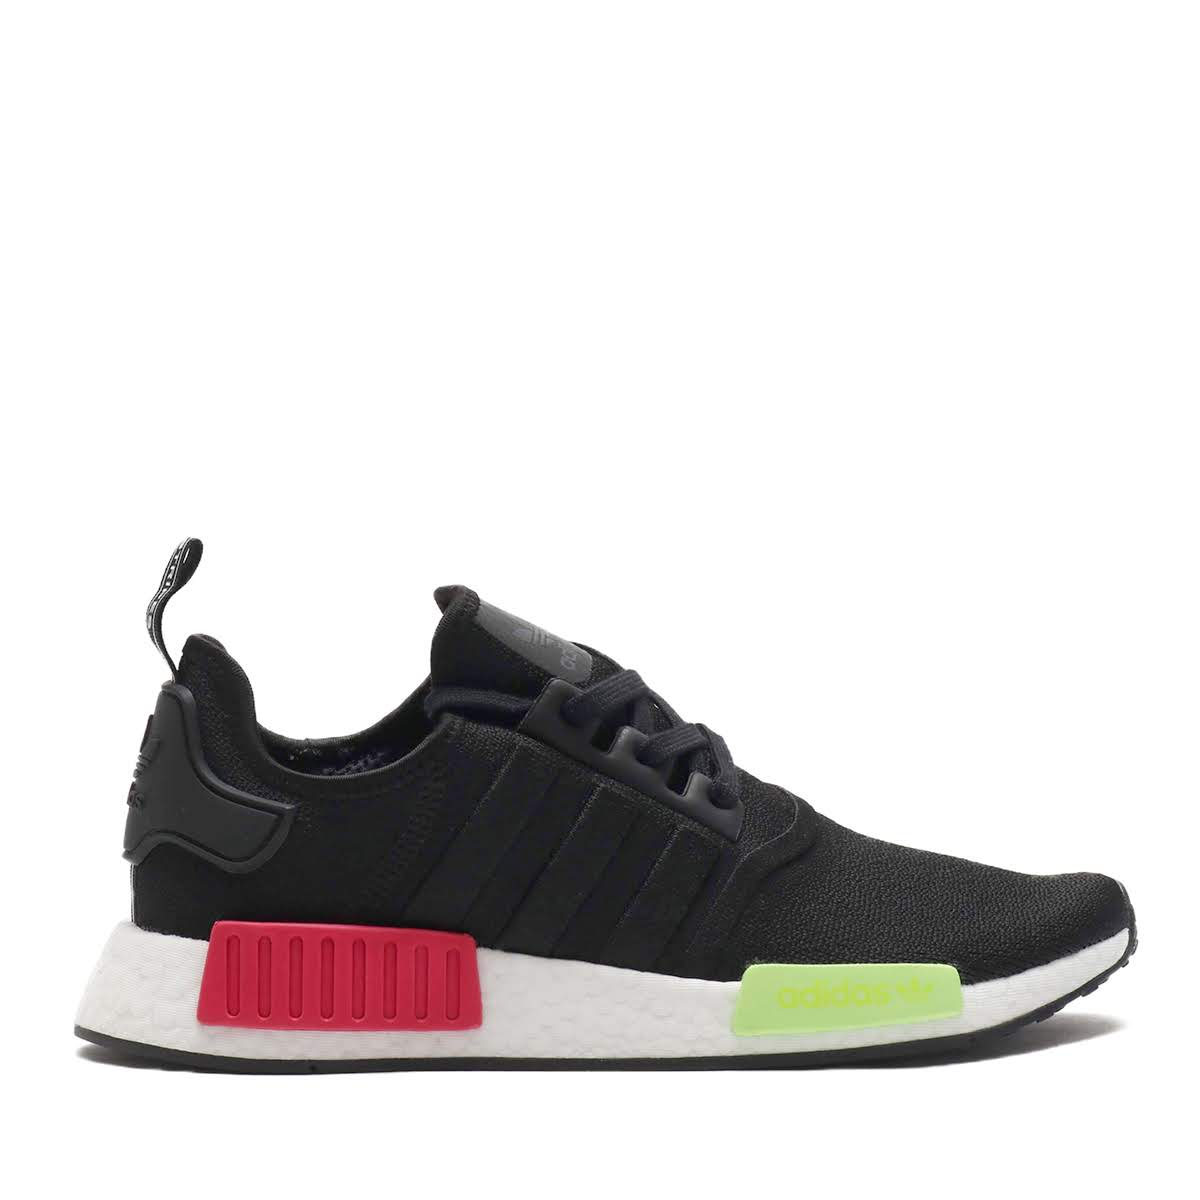 sneakers for cheap e4c08 72881 adidas NMD_R1 (CORE BLACK/CORE BLACK/ENERGY PINK) (Adidas N M D _R1)